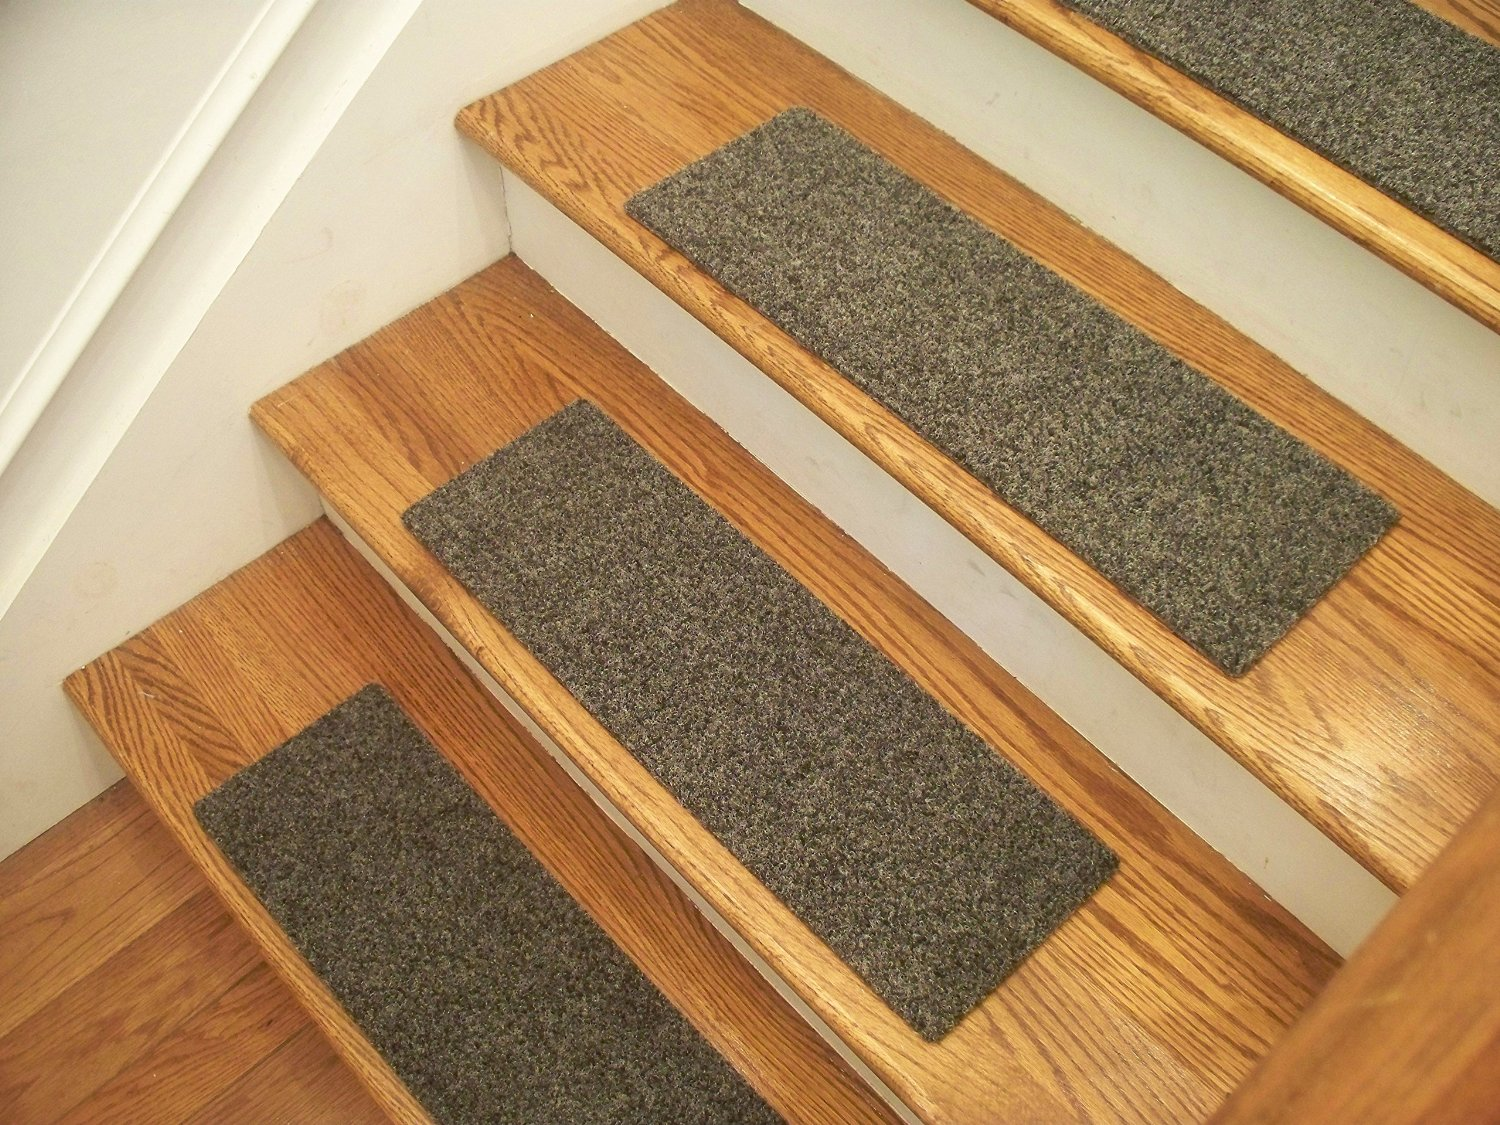 """Essential Carpet Stair Treads - Style: Brush - Color: Graphite Gray - Size: 24"""" x 8"""" - Set of 4"""